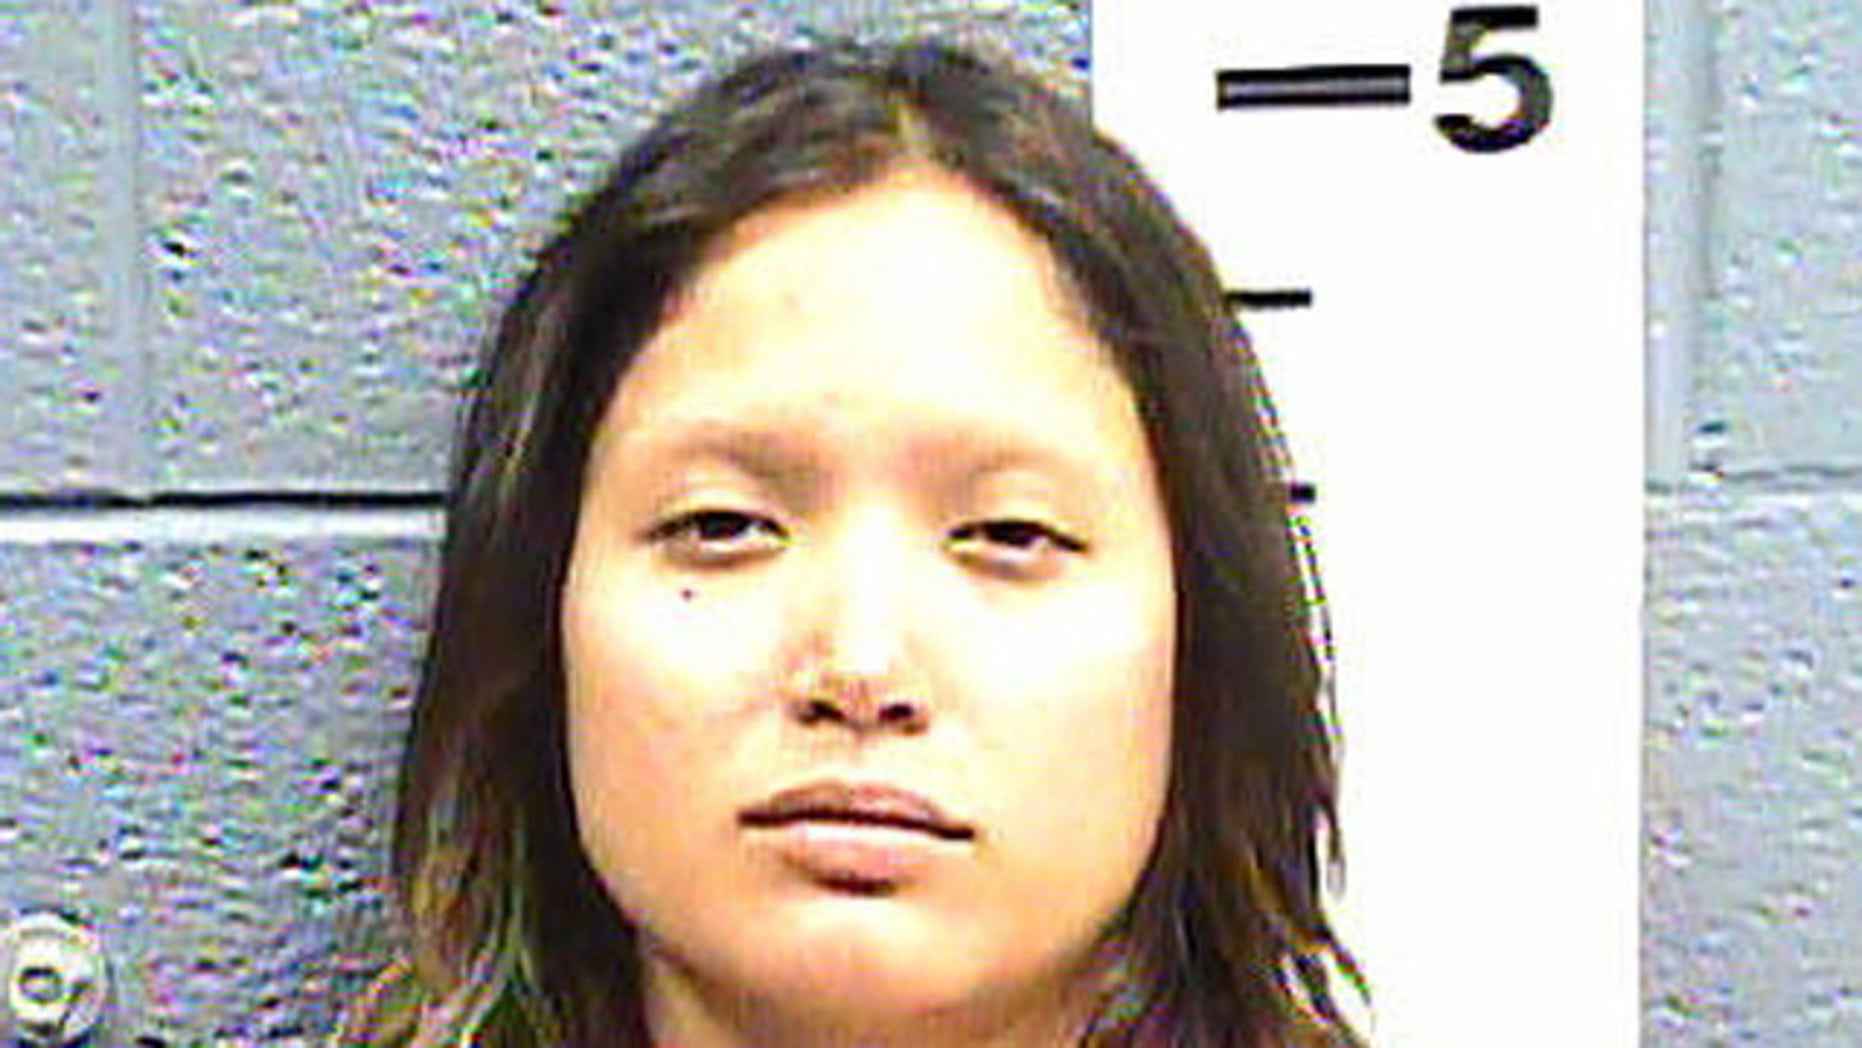 Aurelia Reyes was arrested after grabbing her boyfriend's head and allegedly biting off his lower lip.